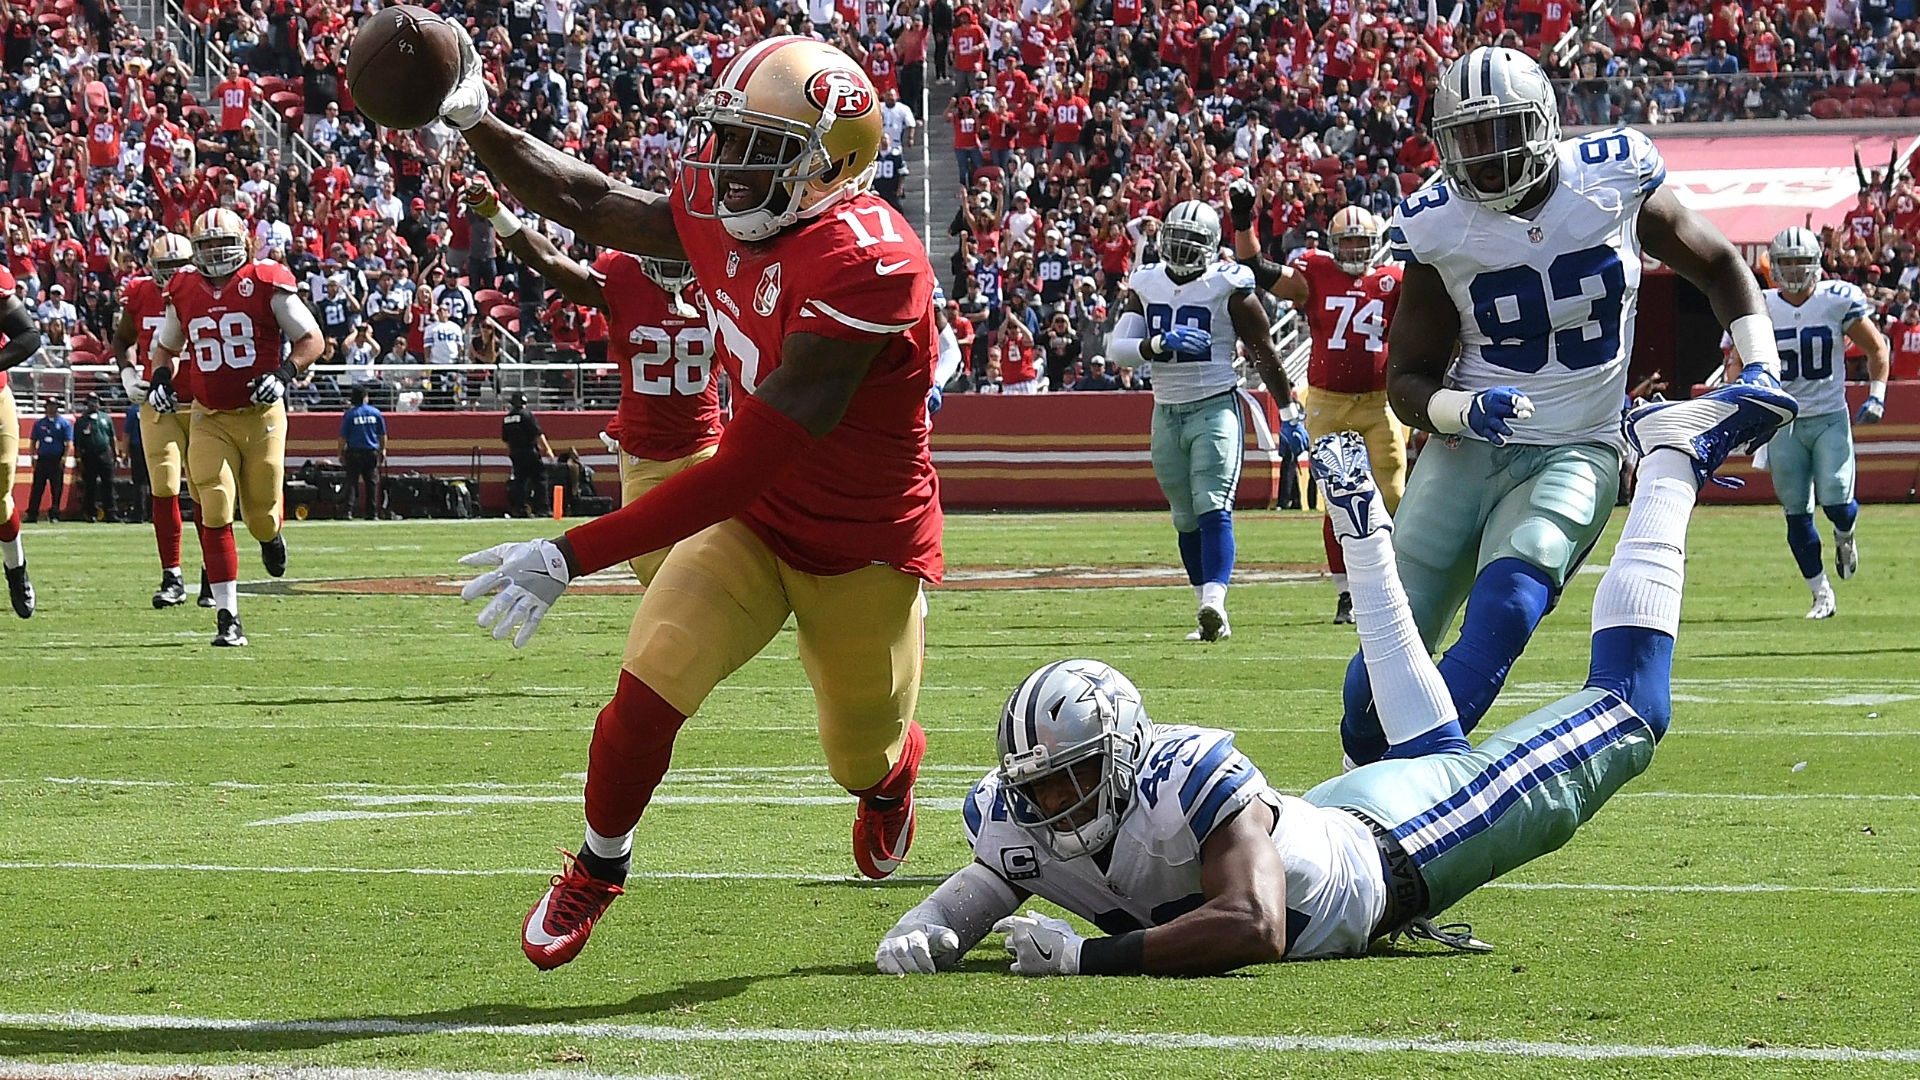 Jeremy Kerley Re-Signs with 49ers on 3-Year, $10.5 Million Contract